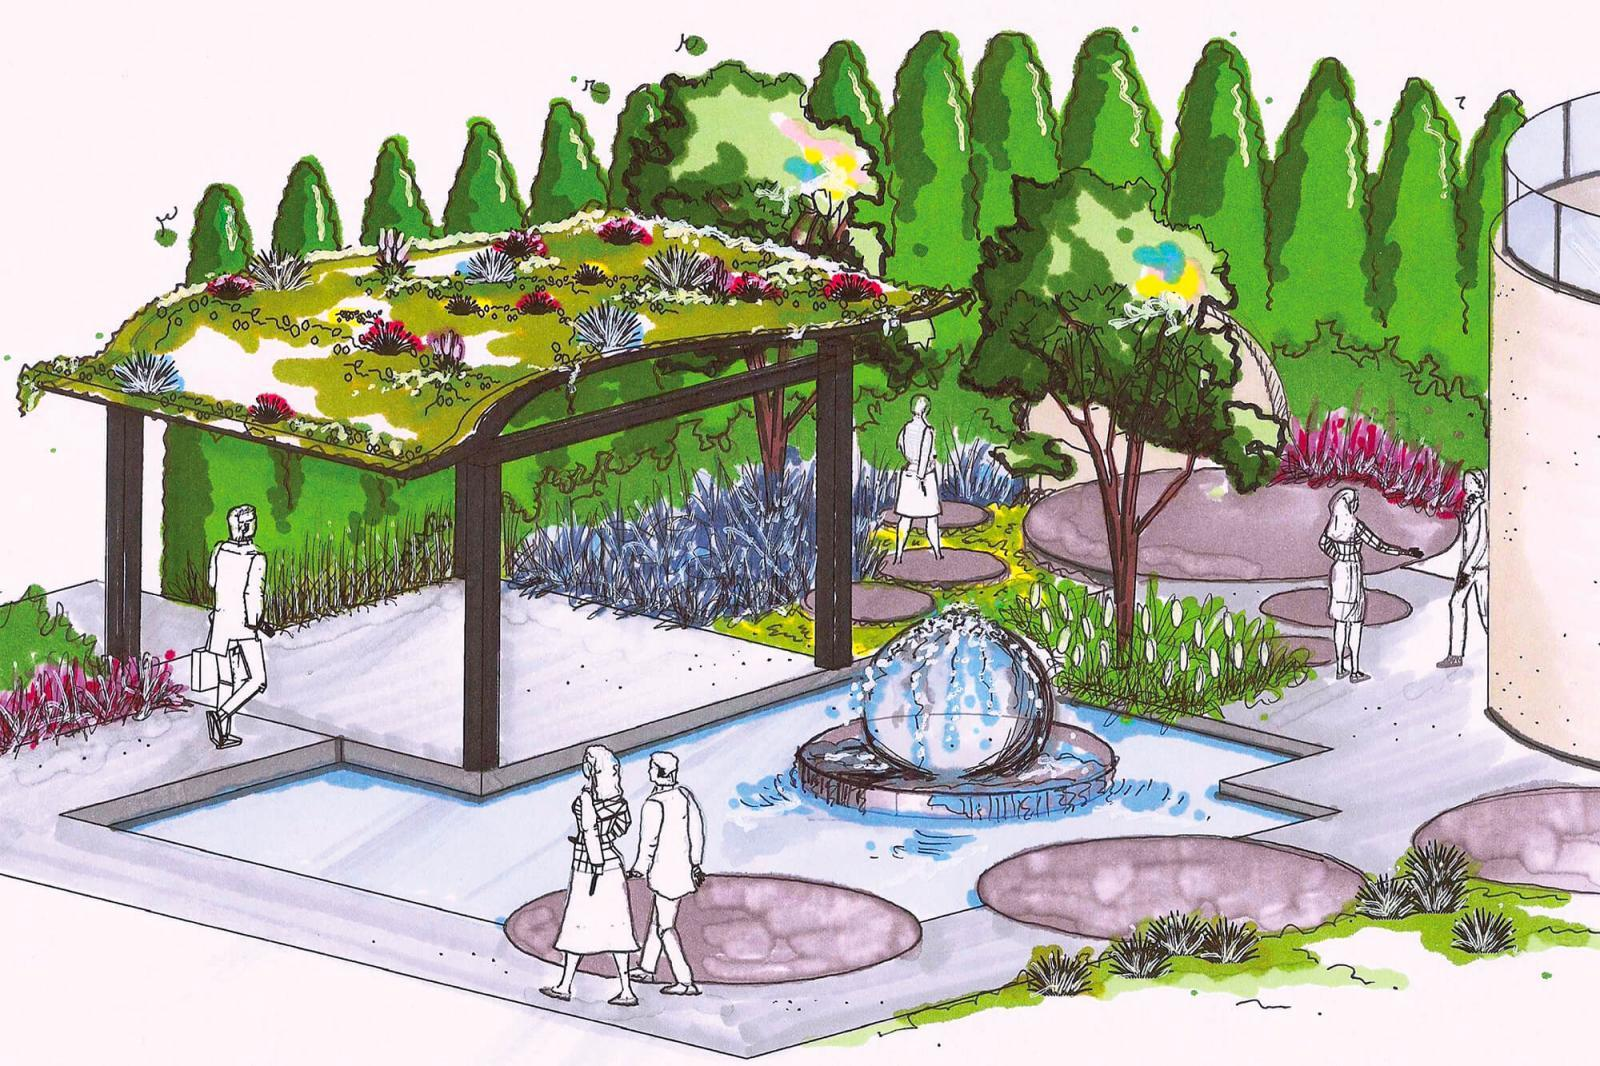 Considered the most ambitious project ever built by Landscape Ontario members, the feature garden at Canada Blooms will embrace water, spectacular plants, unique hardscaping materials and superb craftsmanship.